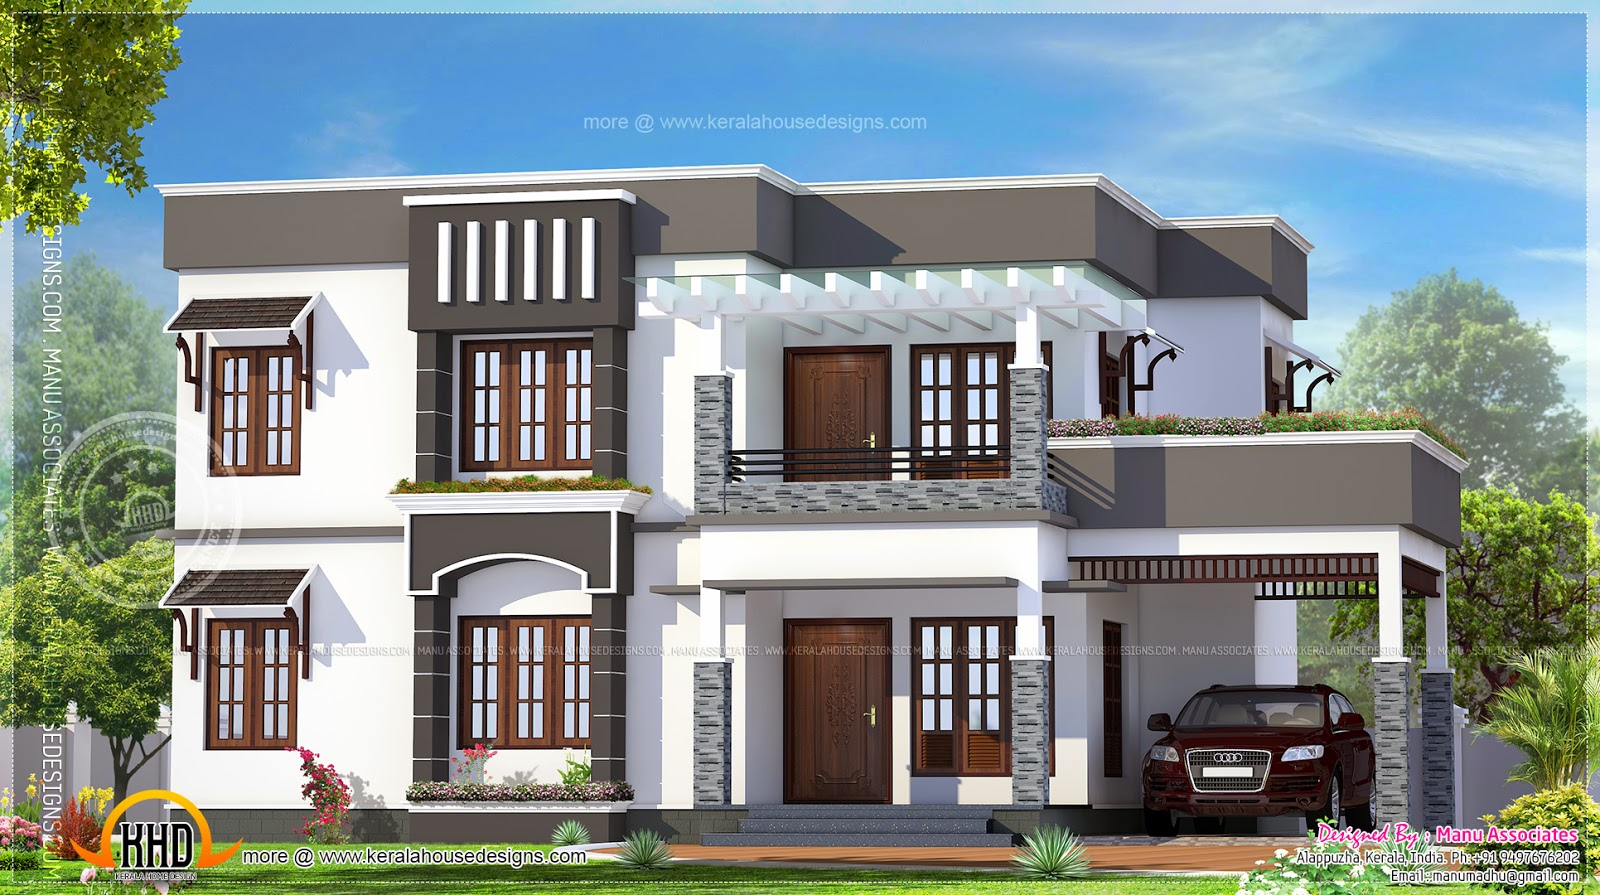 4 bhk flat roof house exterior kerala home design and for Building outer design